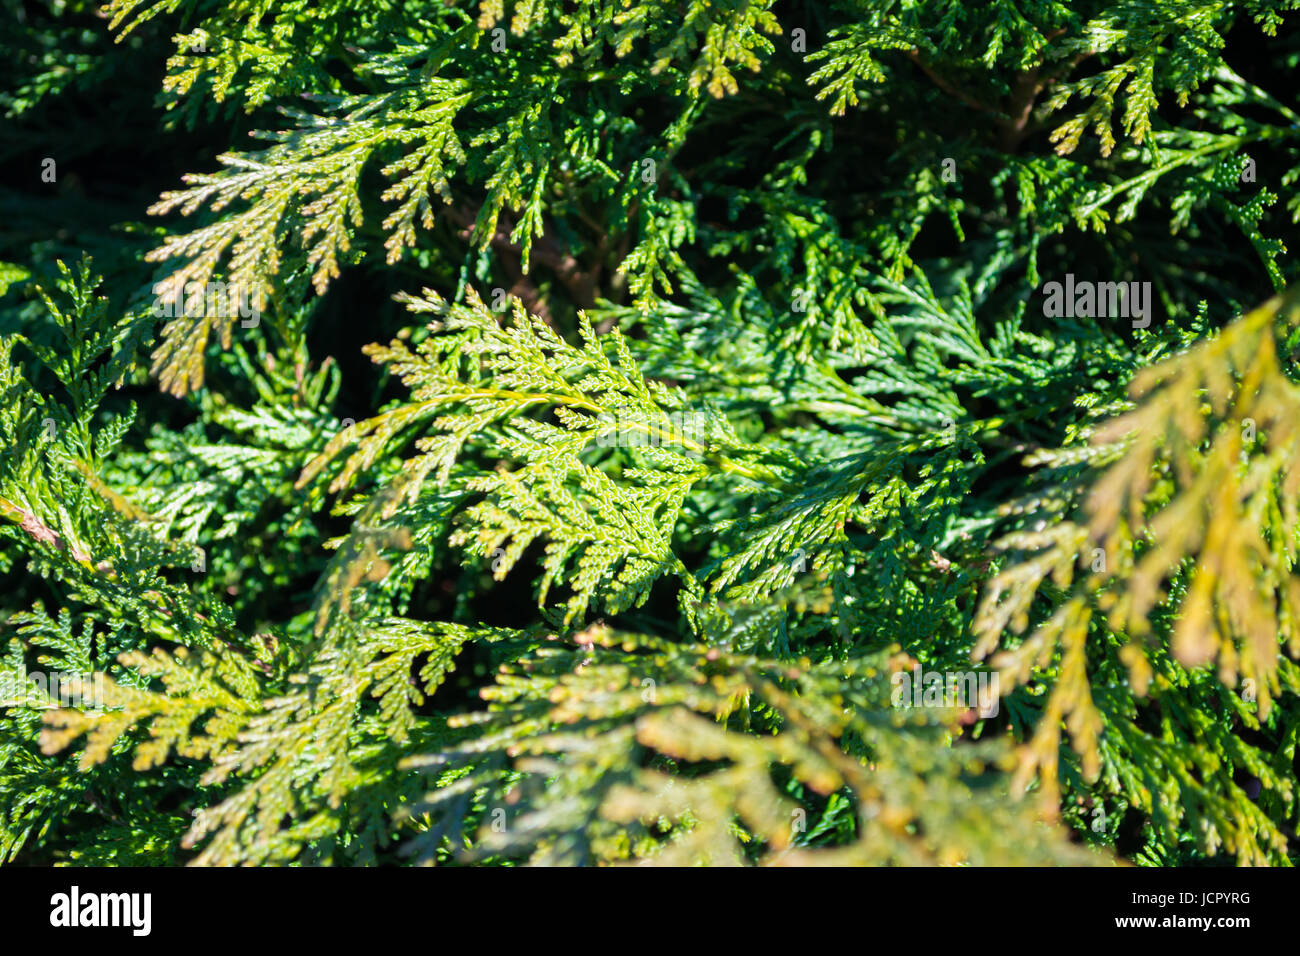 Thuya plant on spring. Green texture, background. - Stock Image